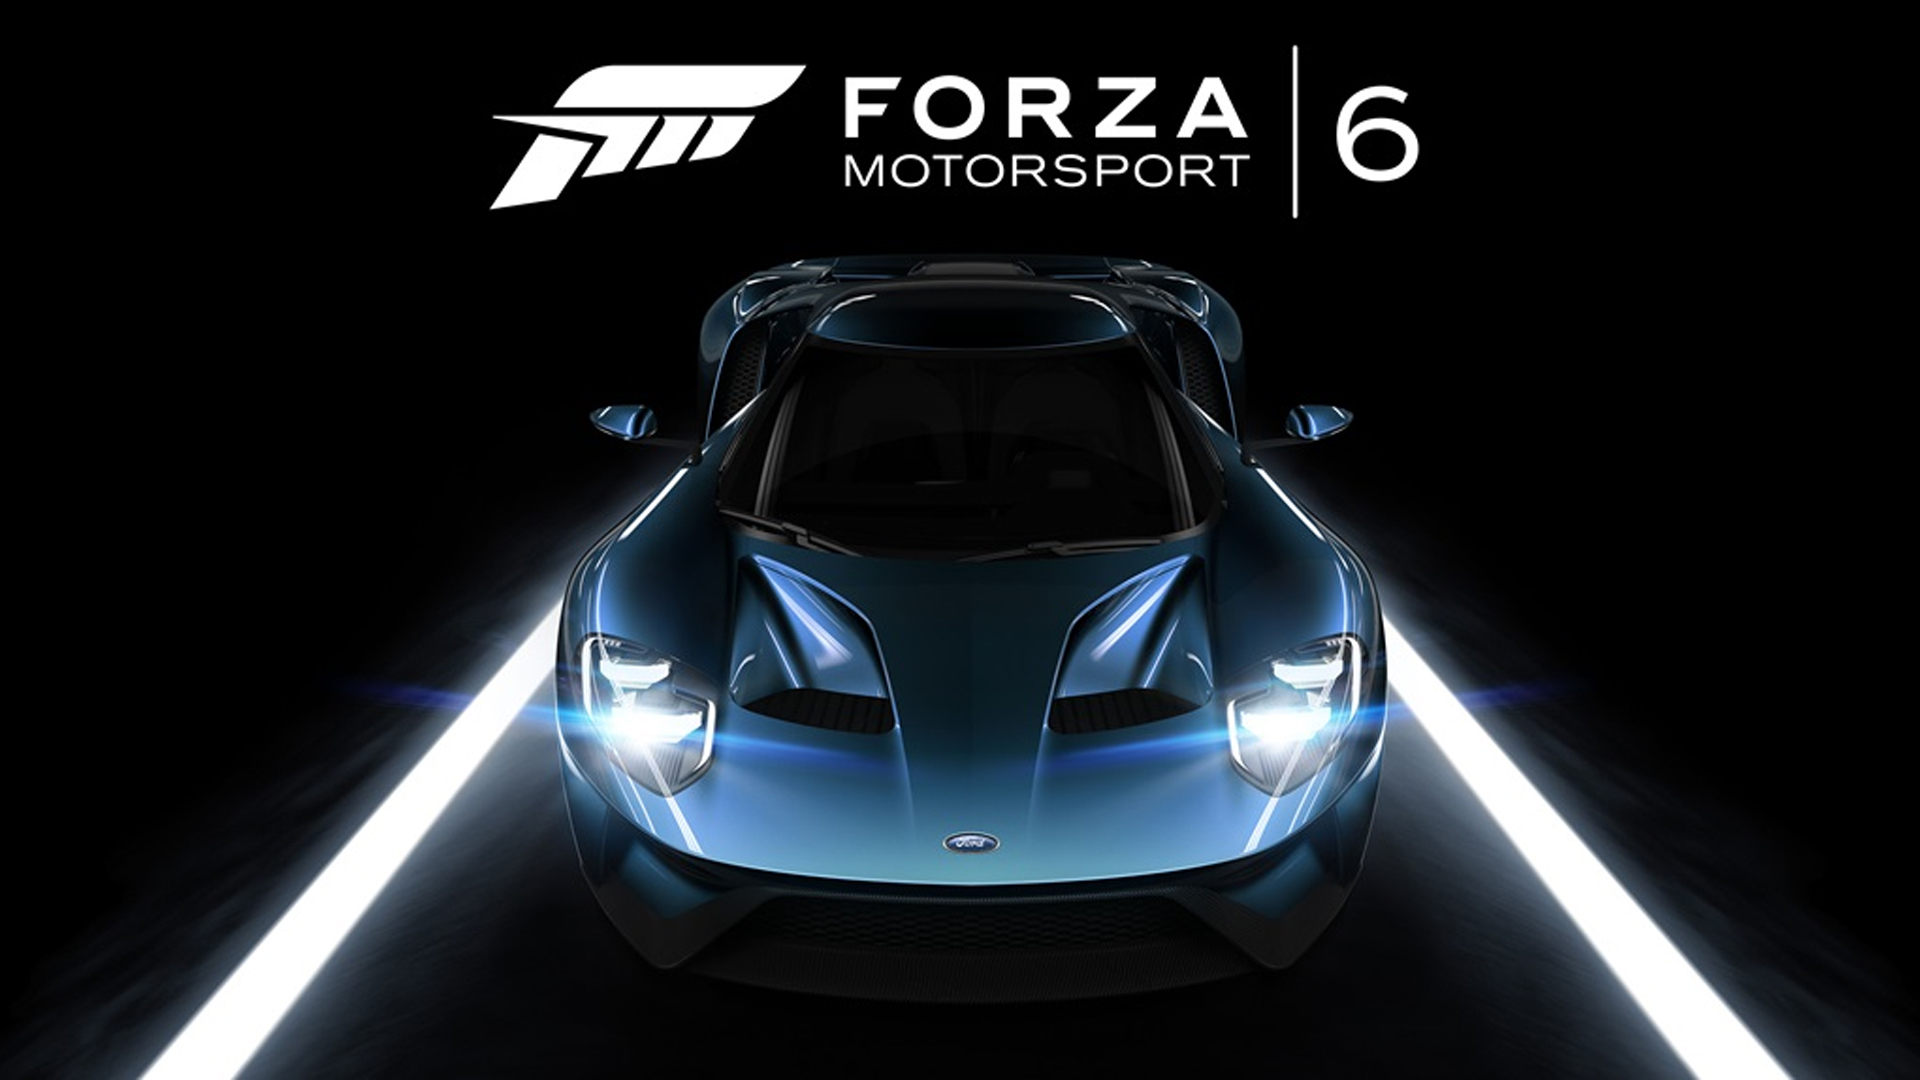 Forza Motorsport 6 Install Size